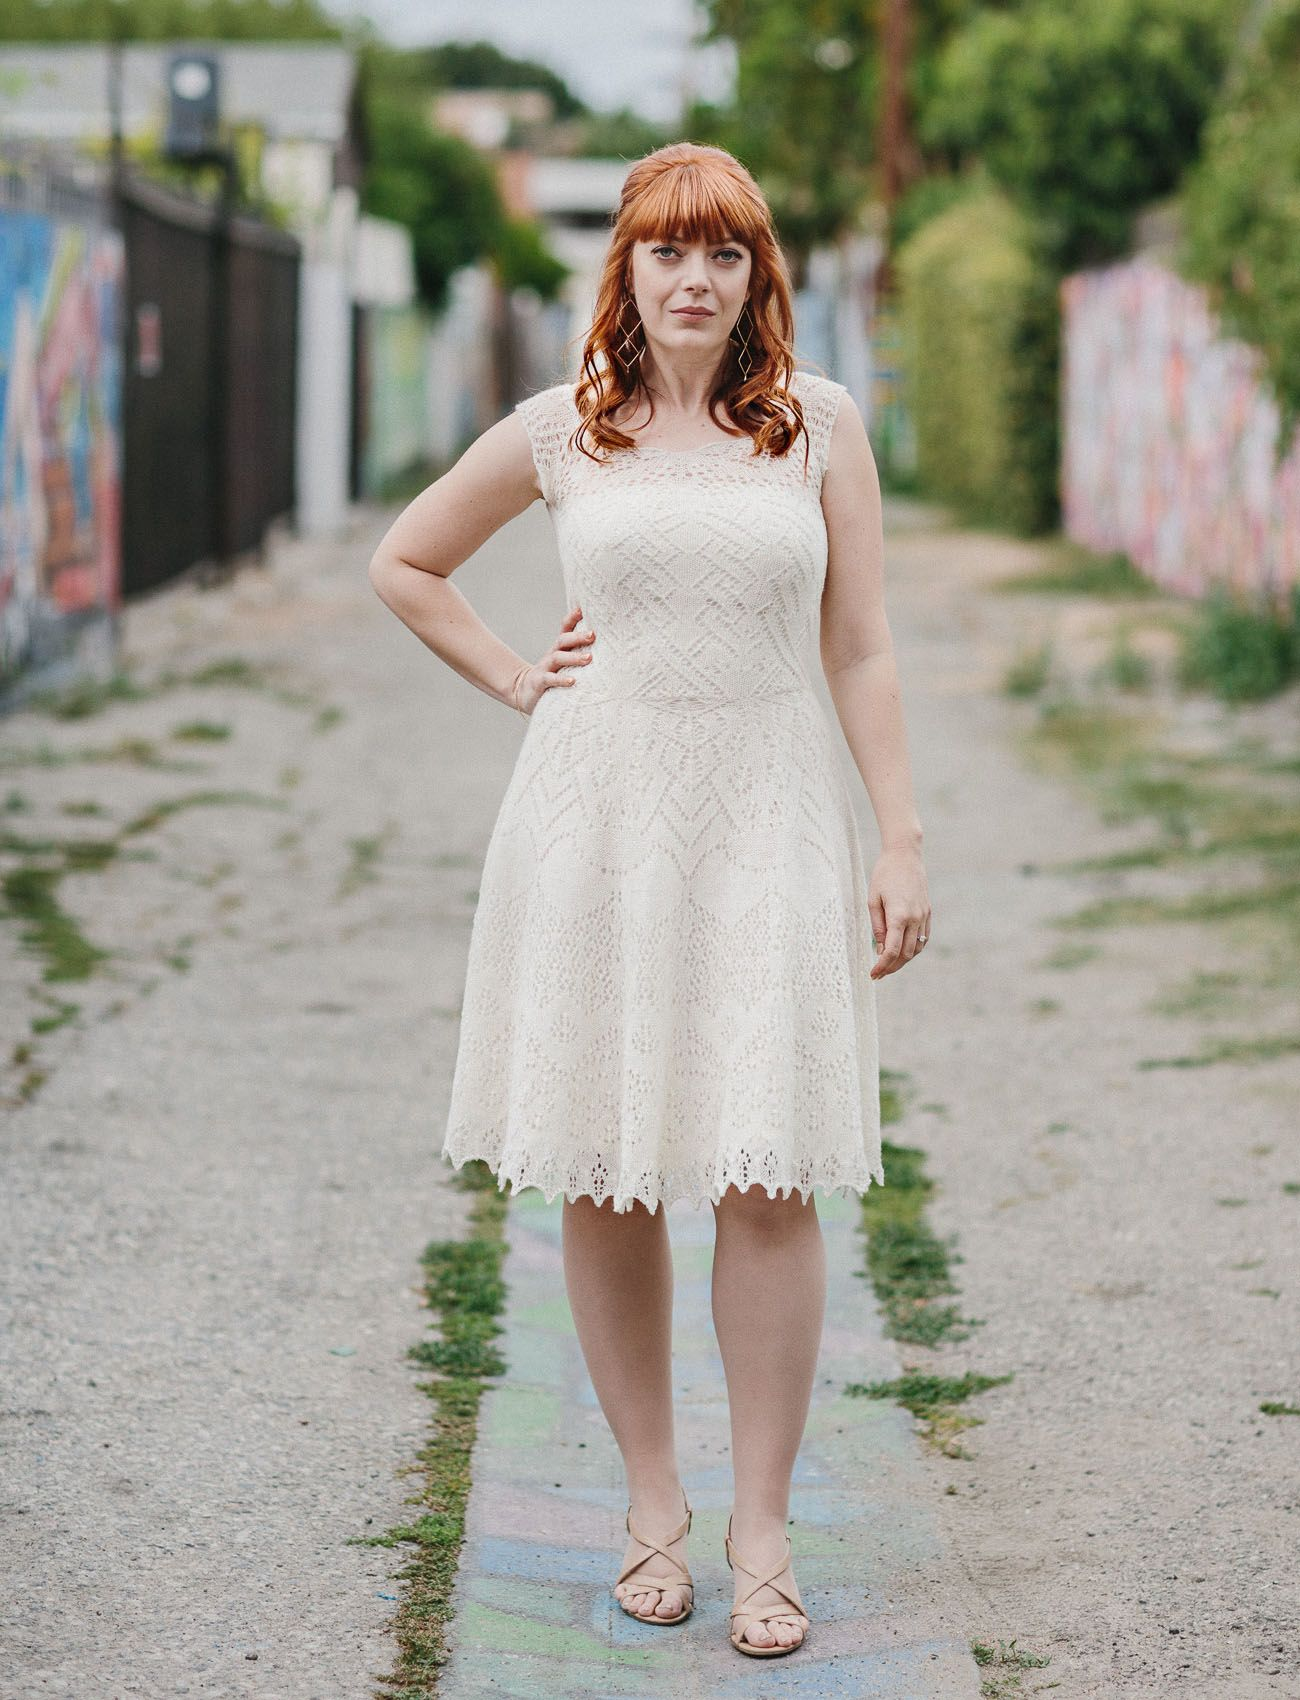 The Bride Knit Her Own Dress for This Handmade LA Wedding